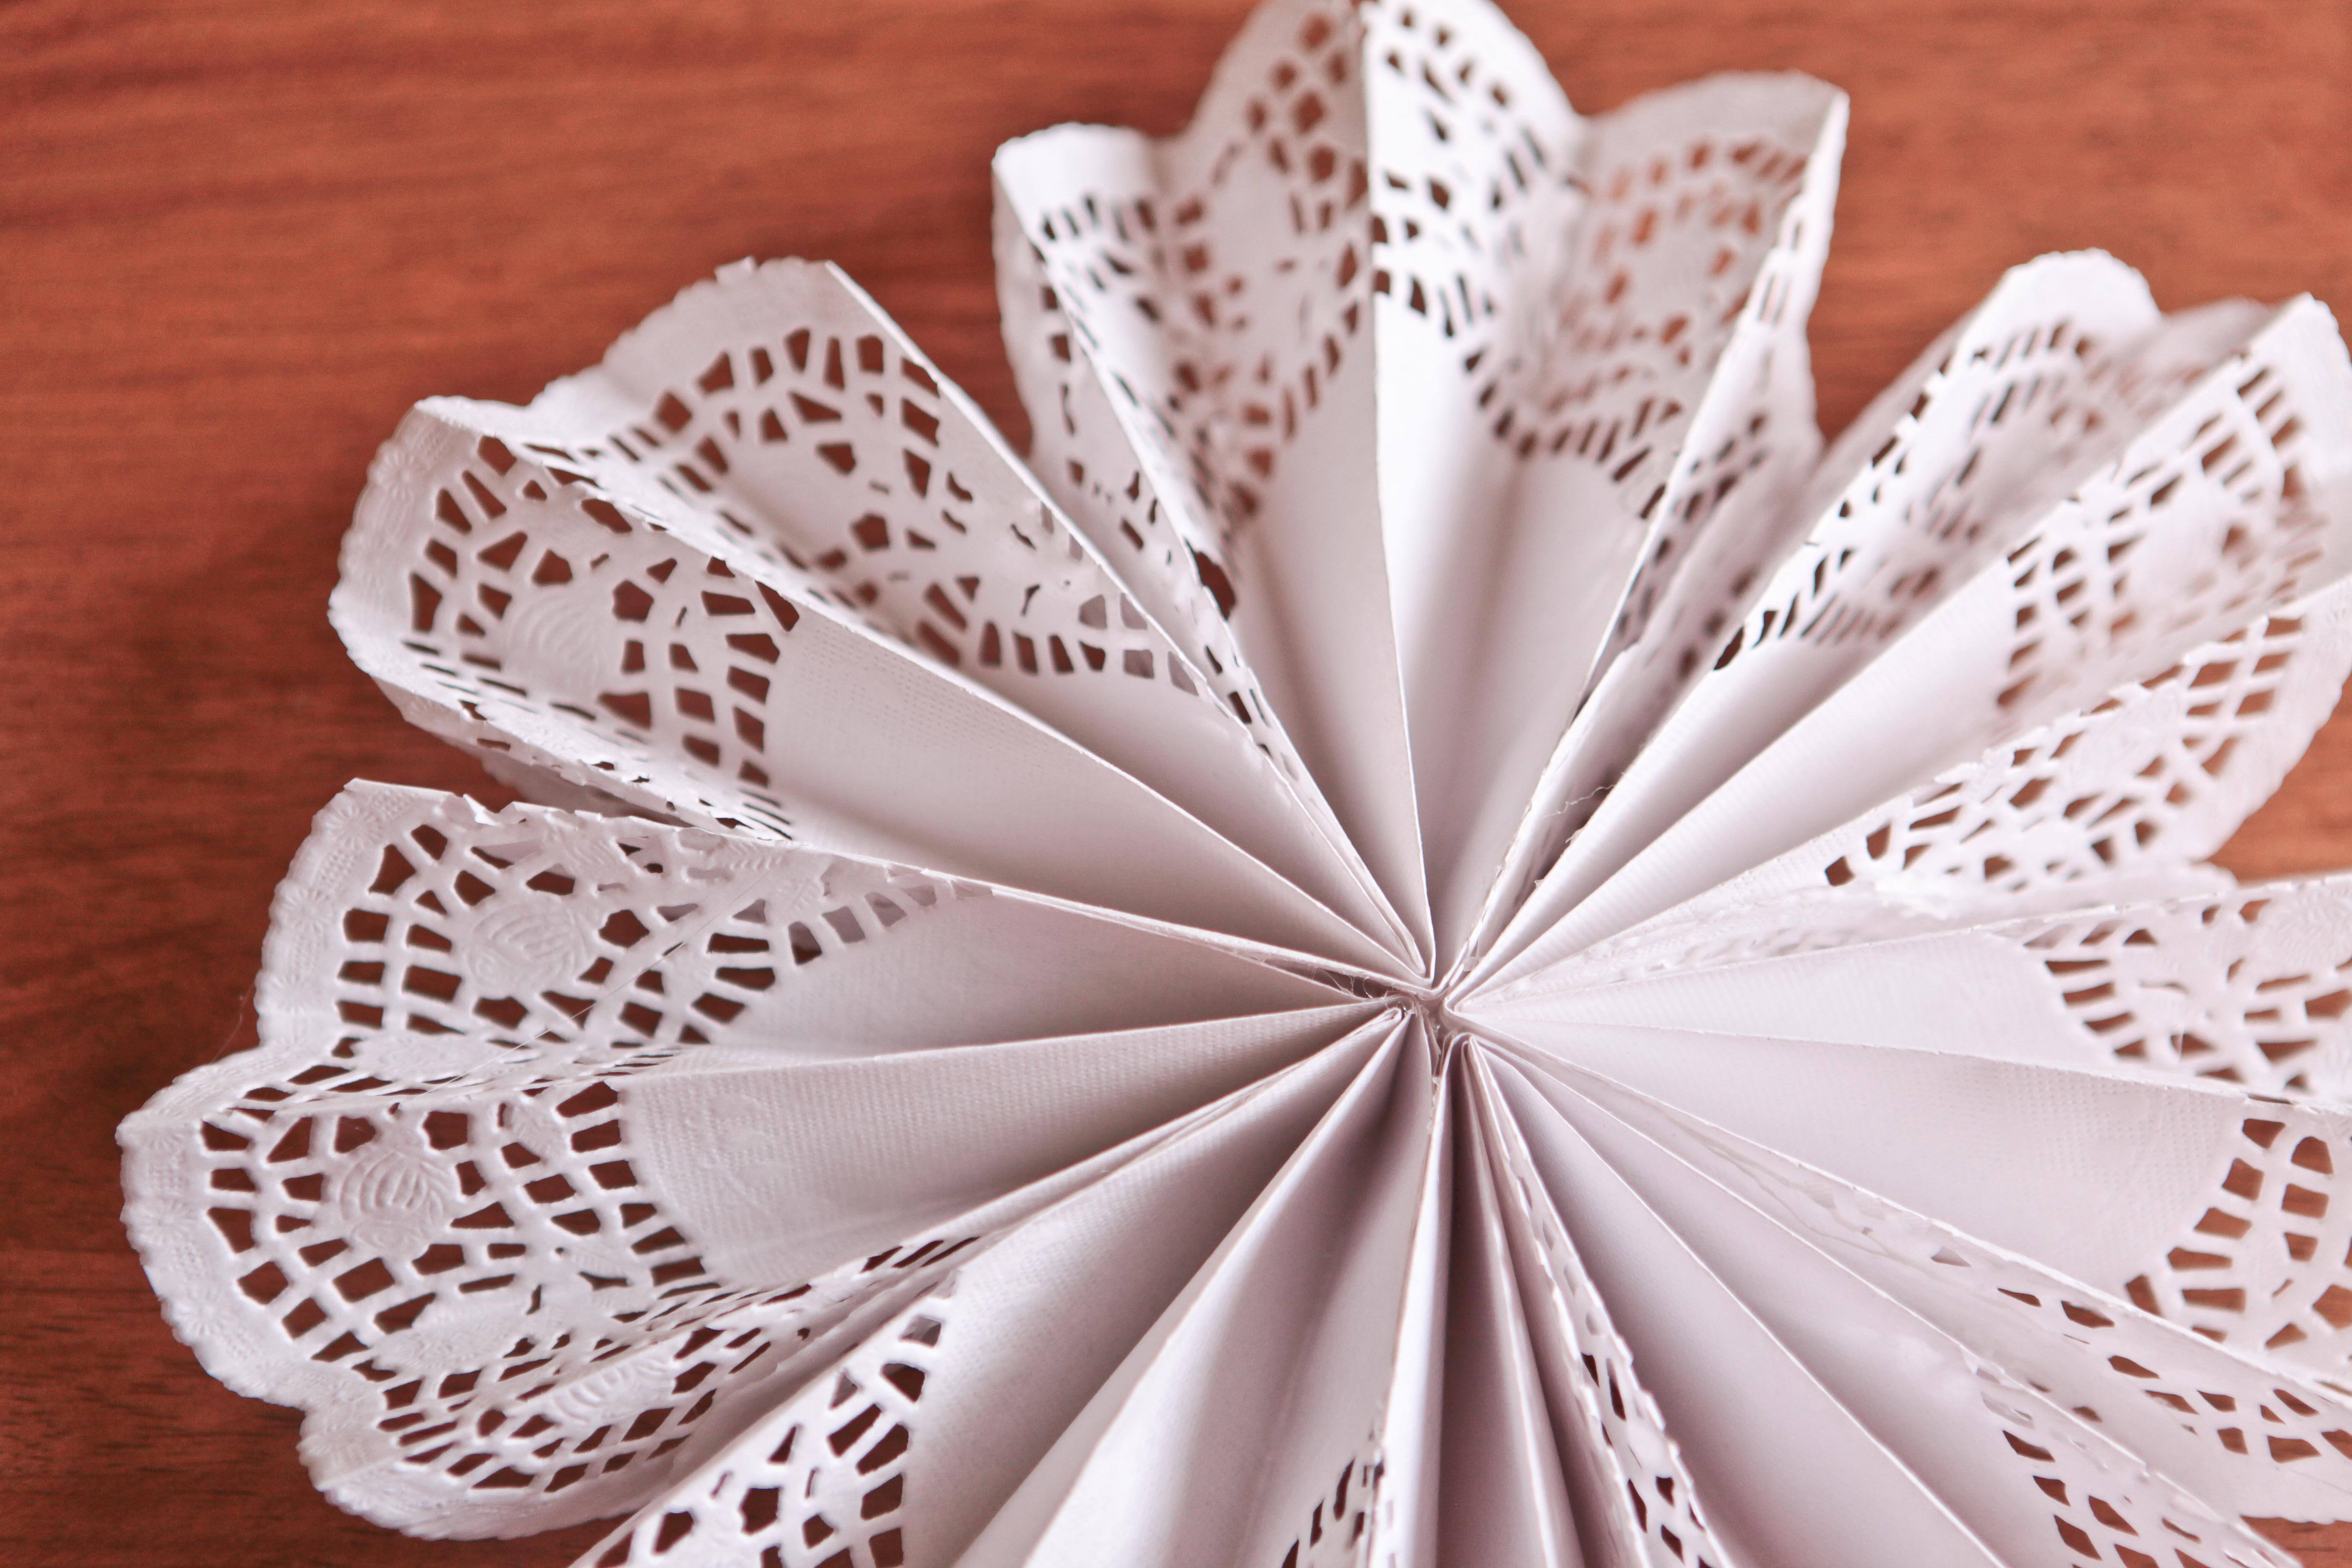 Paper Doily Crafts Awesome Diy Doily Pinwheels Of Beautiful 42 Images Paper Doily Crafts